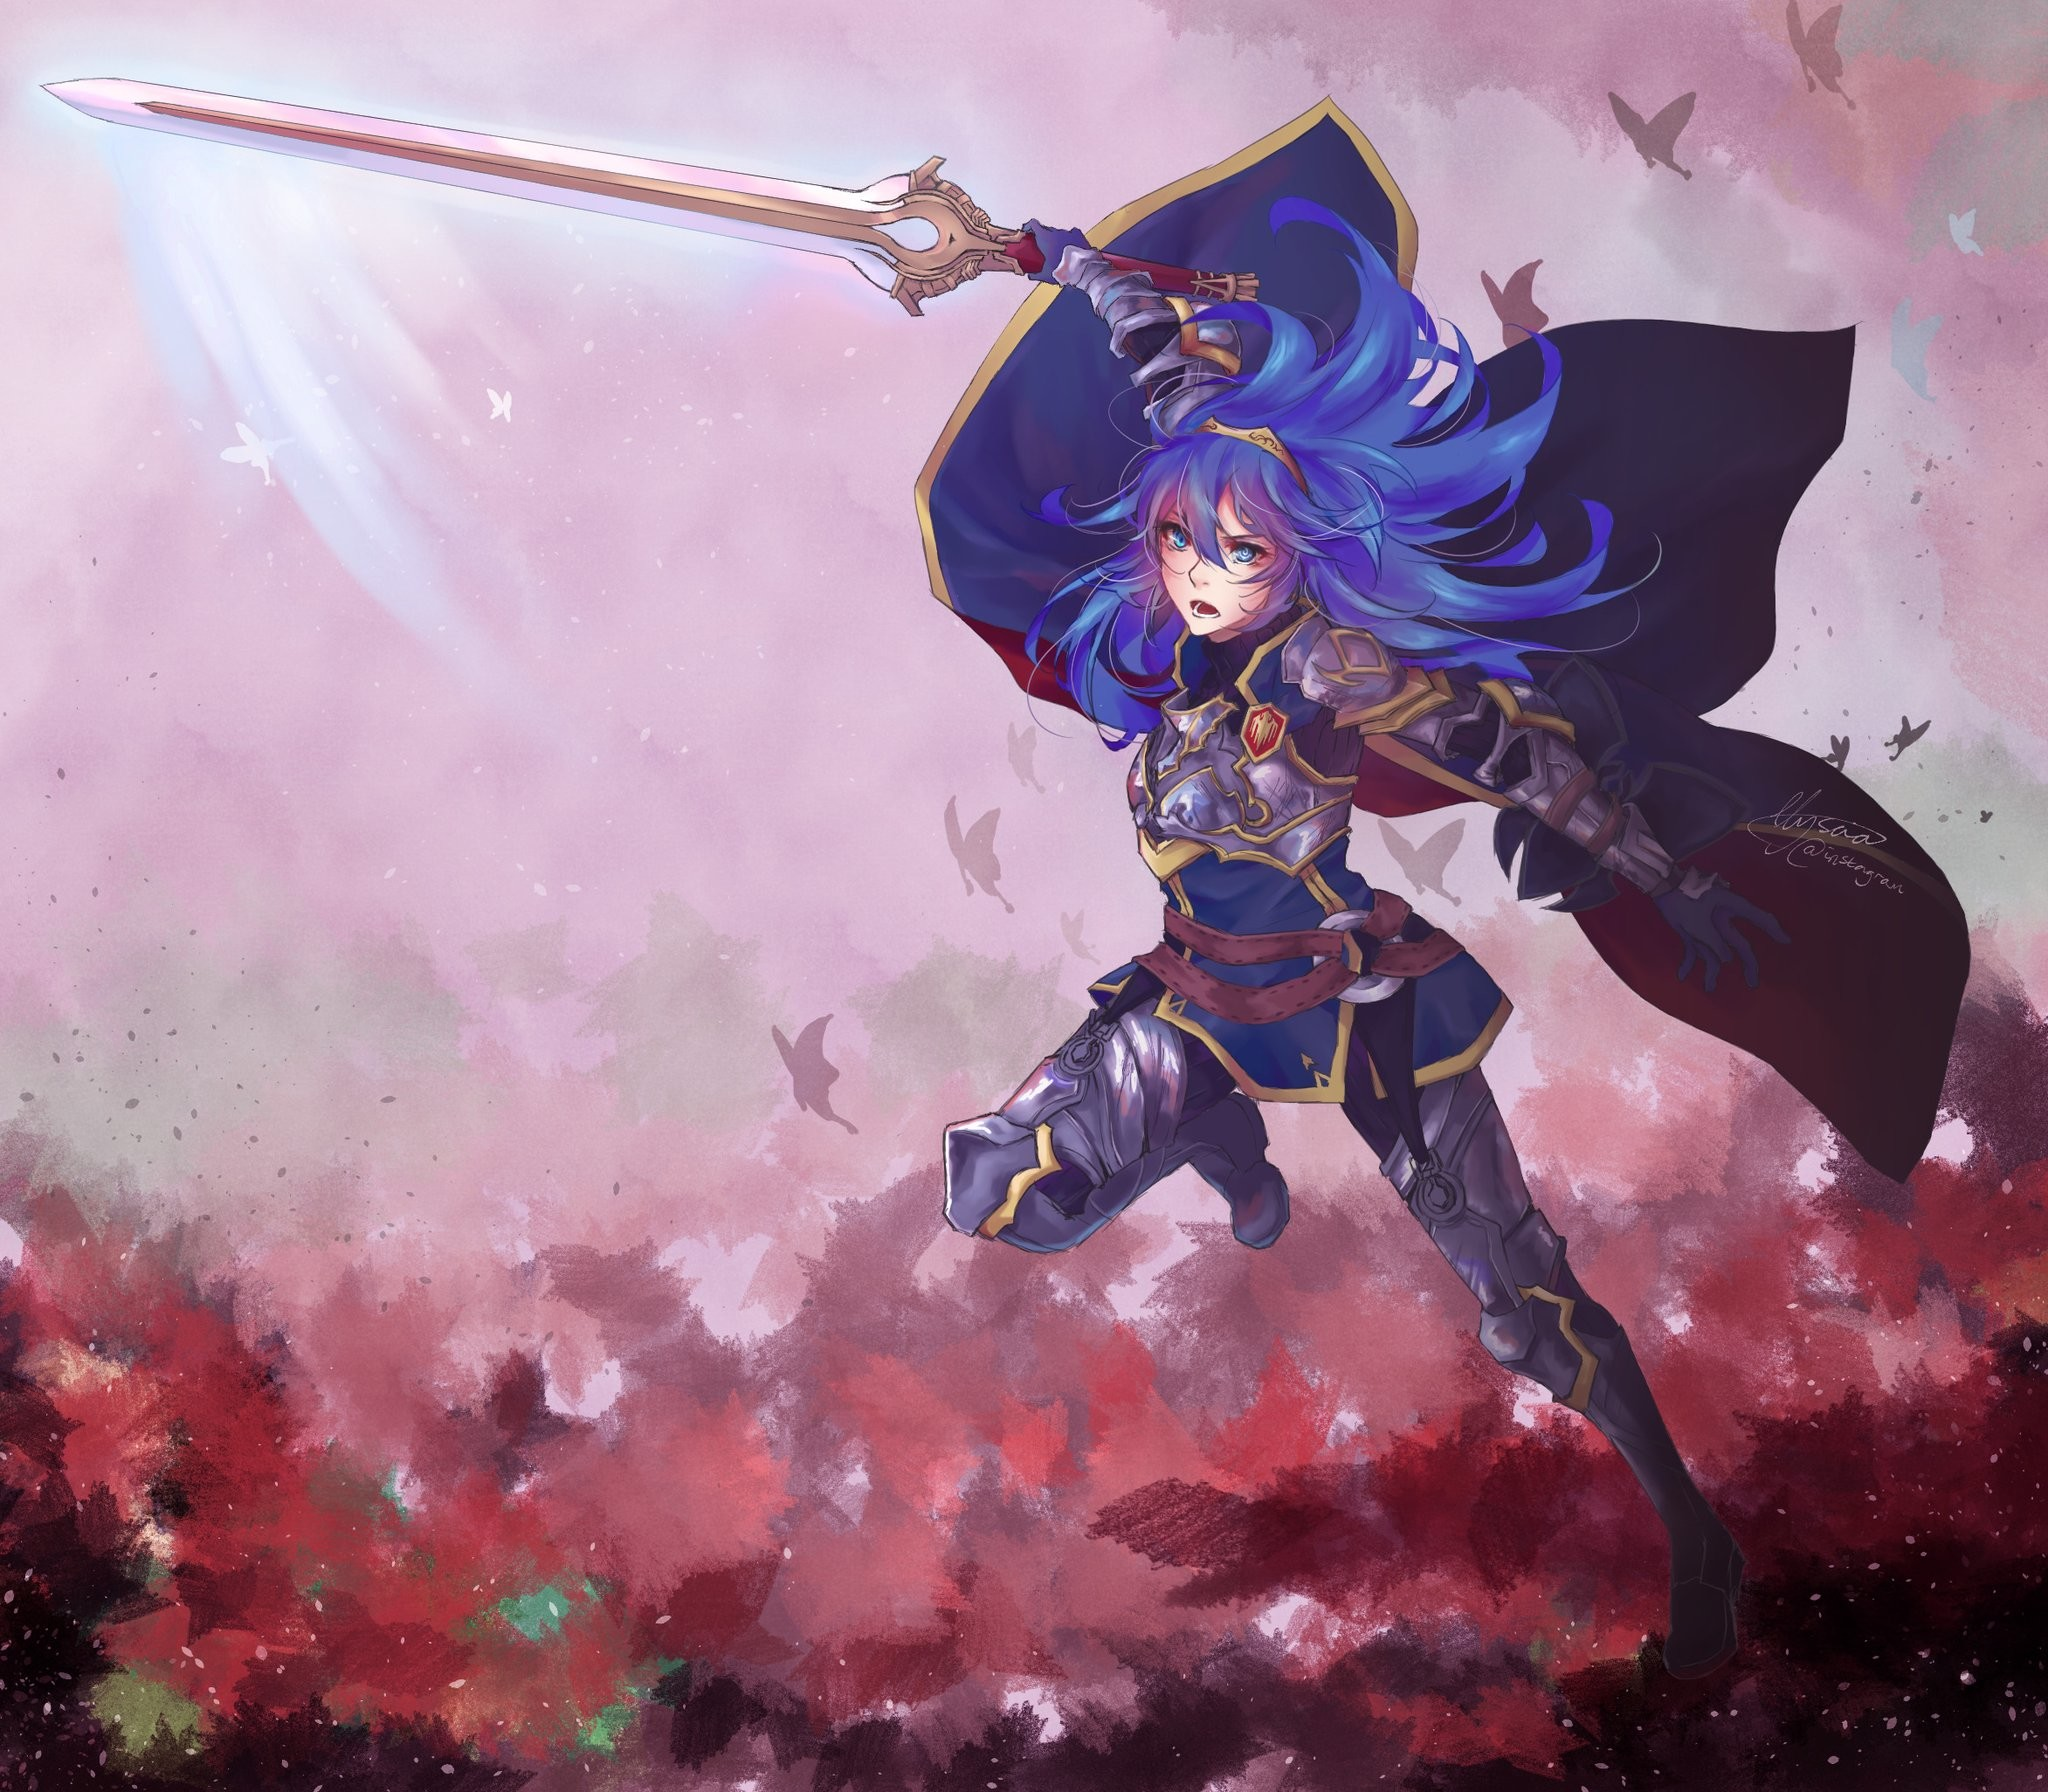 2048x1792 Fire emblem · Lucina as Great Lord commissioned artwork